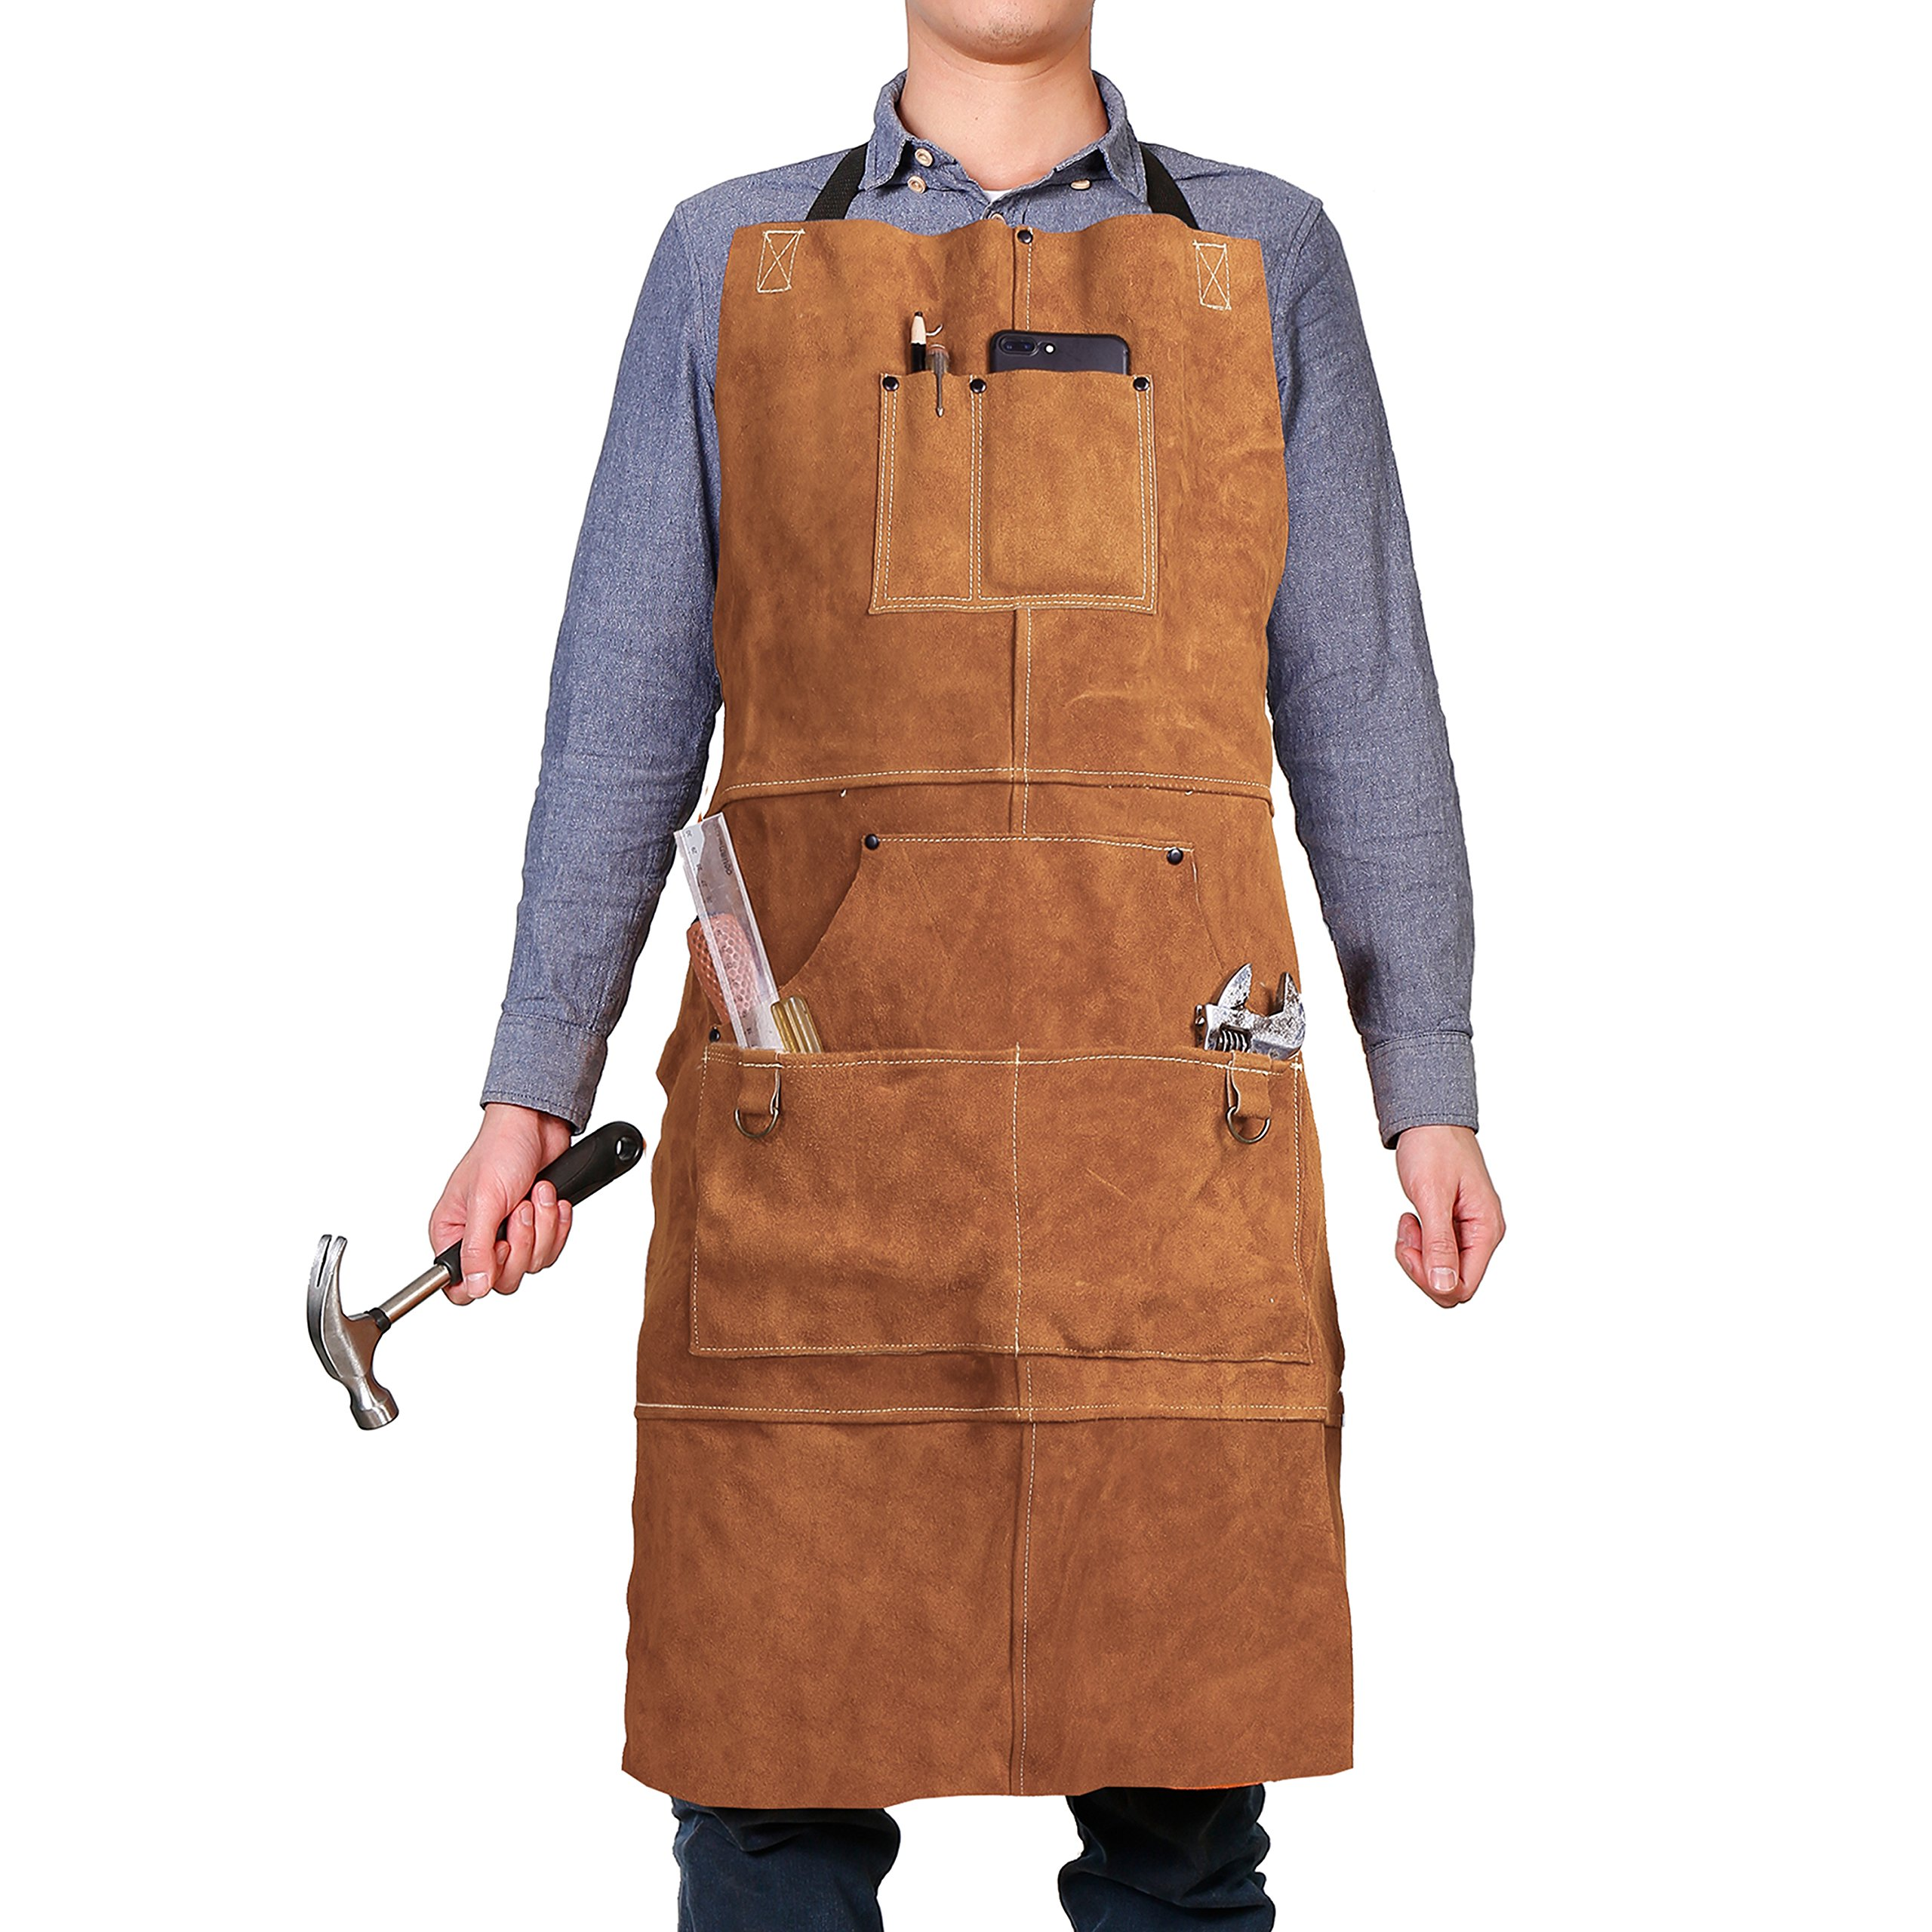 Leather Work Shop Apron with 6 Tool Pockets by QeeLink - Heat & Flame Resistant Heavy Duty Welding Apron, 24'' x 36'', Adjustable M to XXL for Men & Women (Brown) by QeeLink